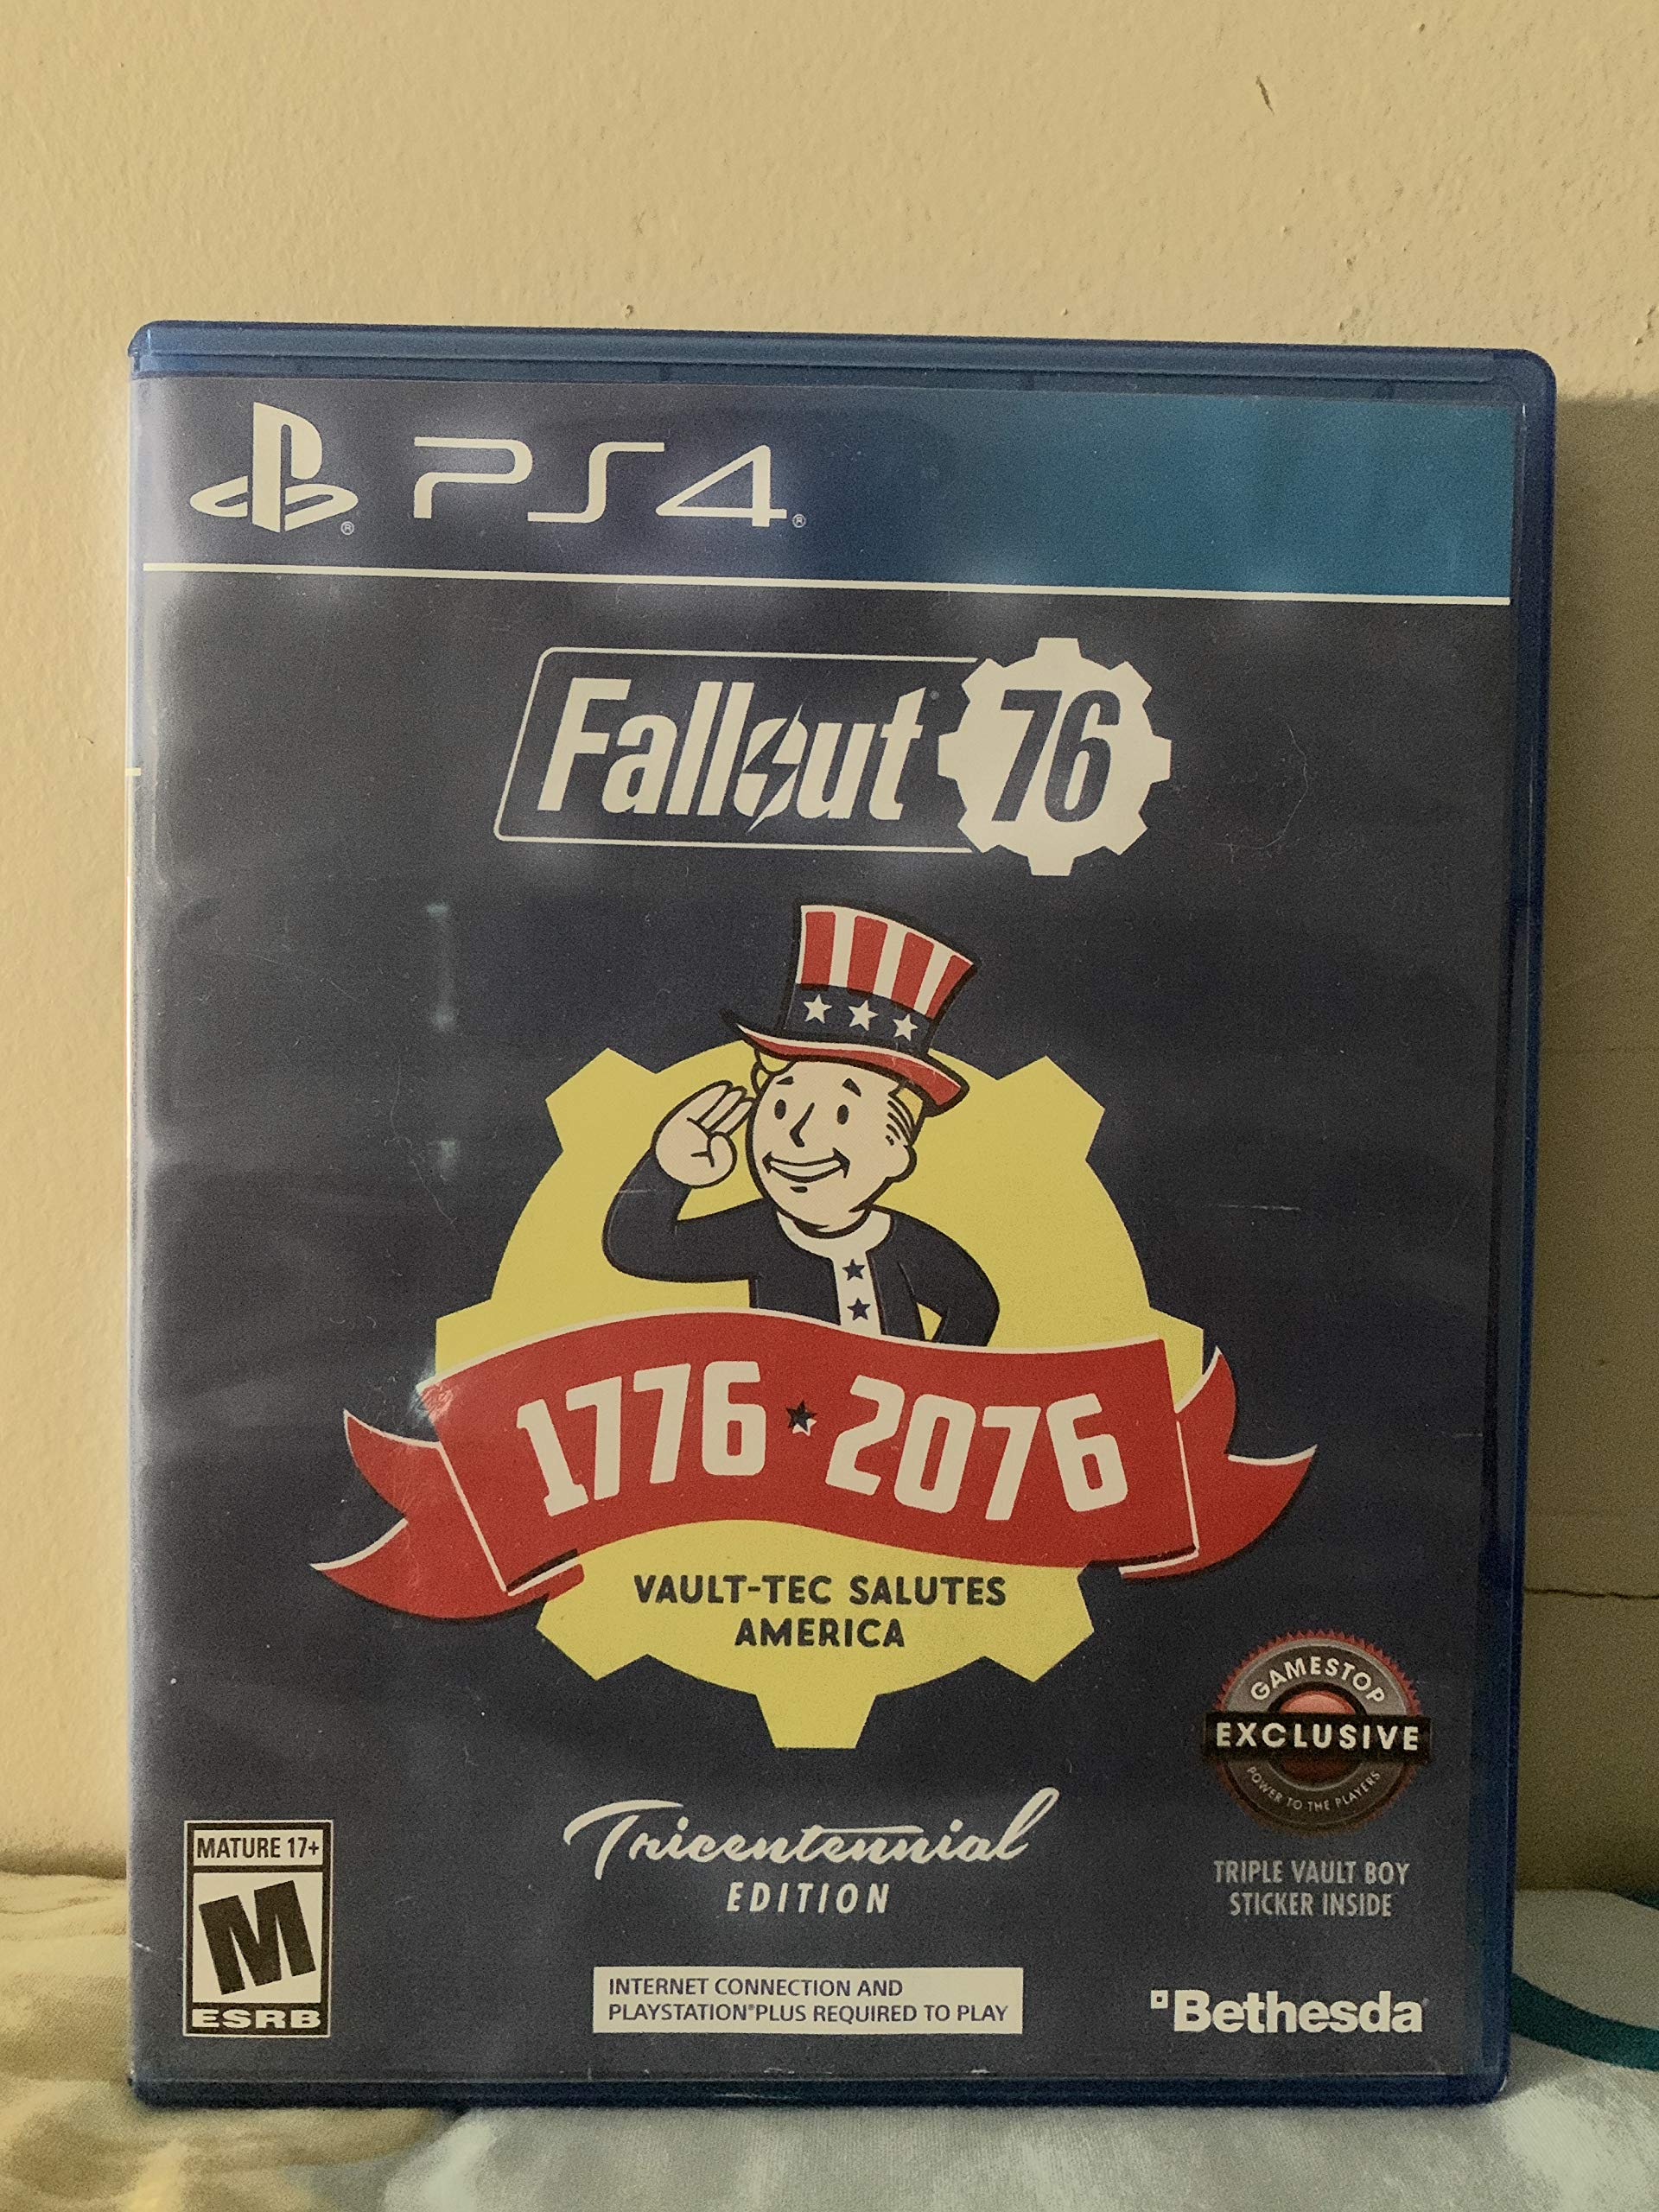 Amazon.com: Fallout 76 - PlayStation 4: Video Games